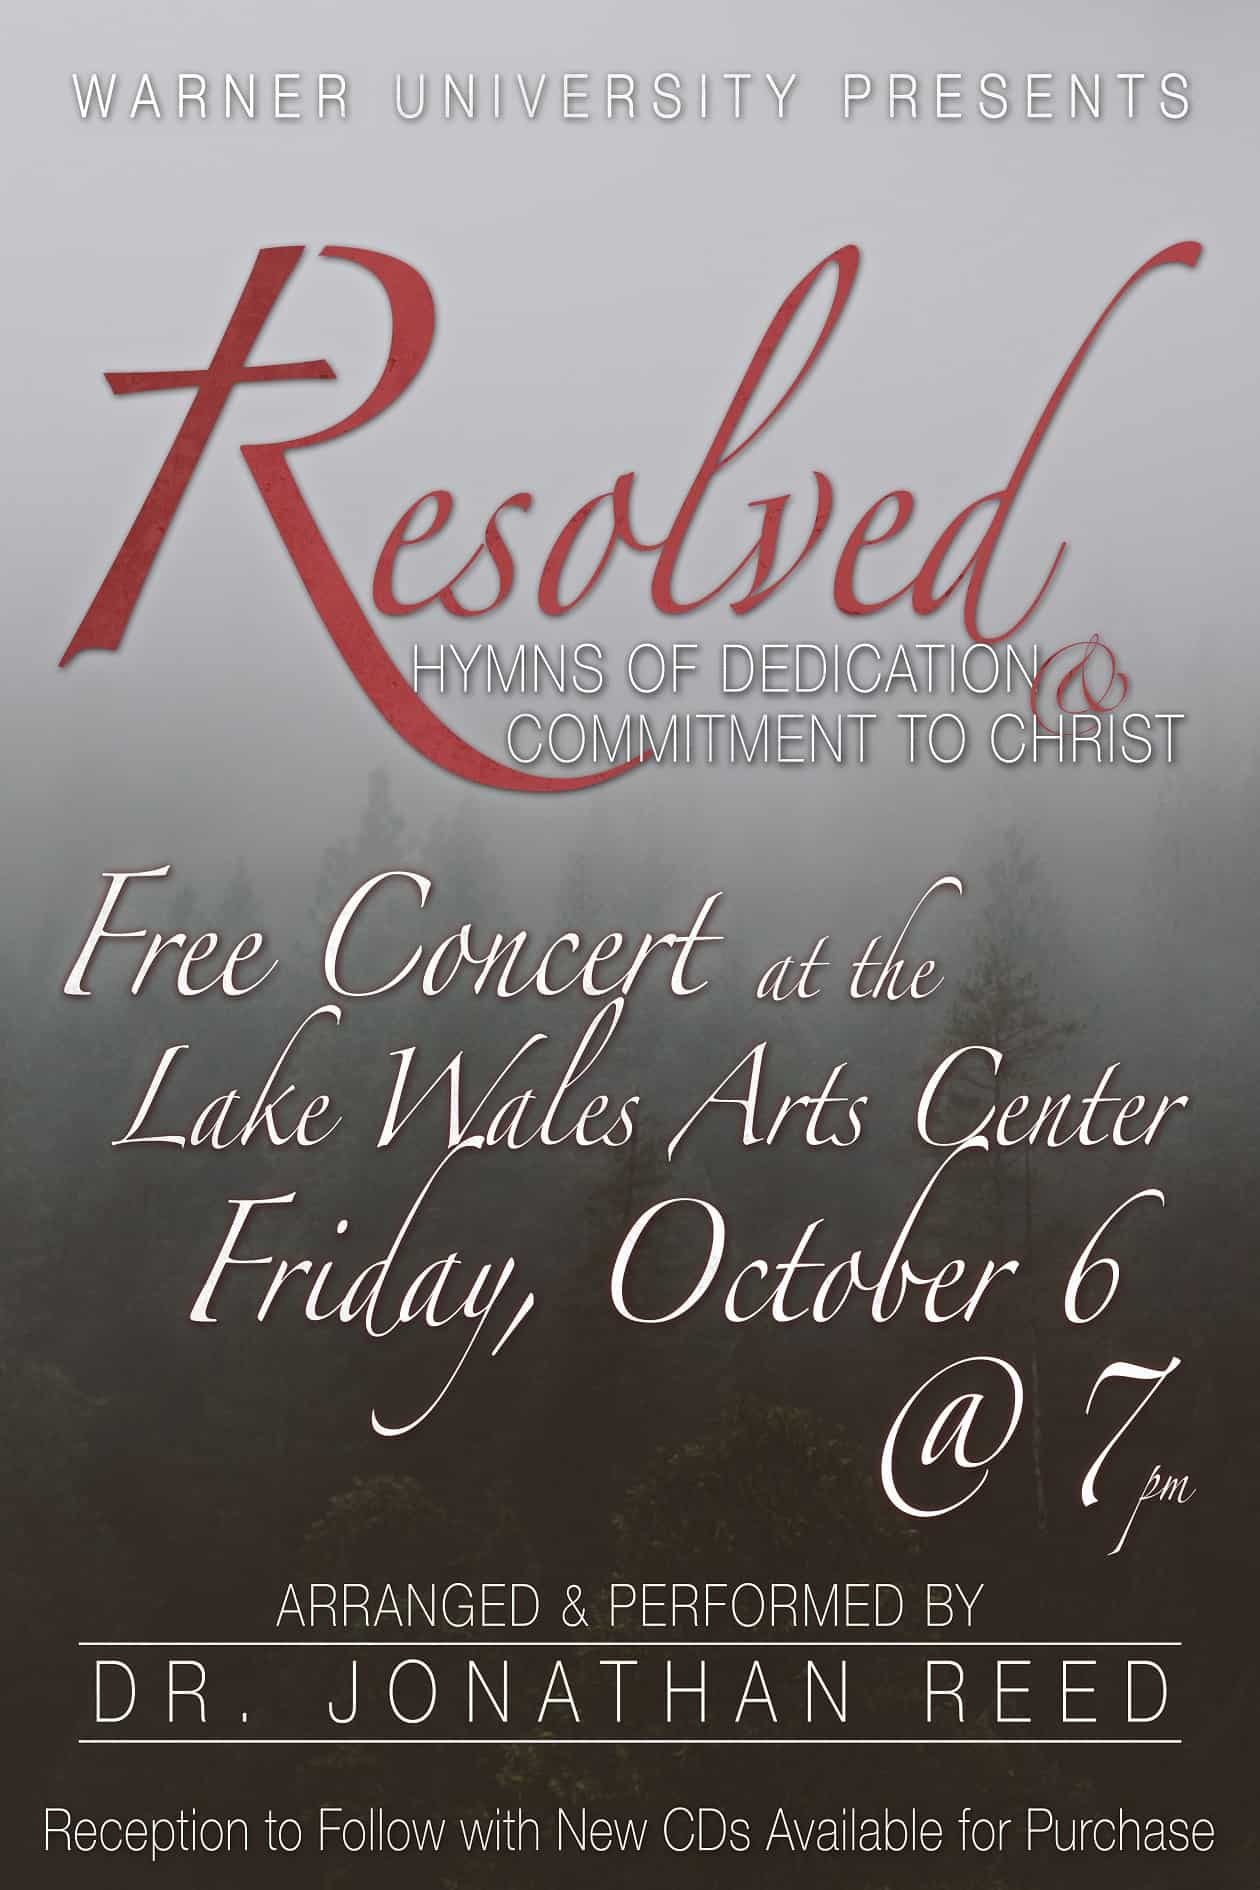 Dr. Reed's Piano Concert – Oct. 6th